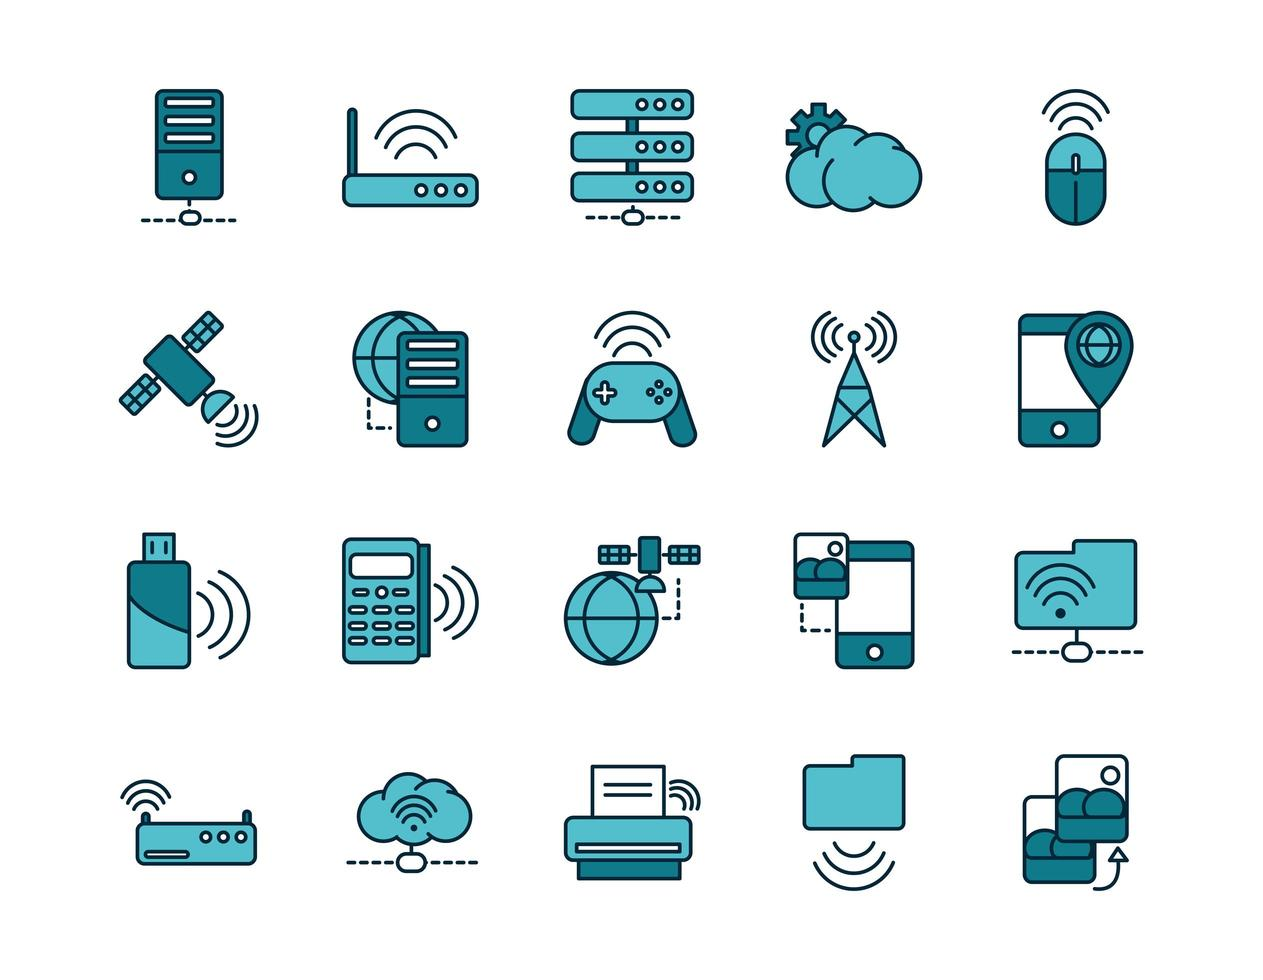 Internet and devices line art icon set vector